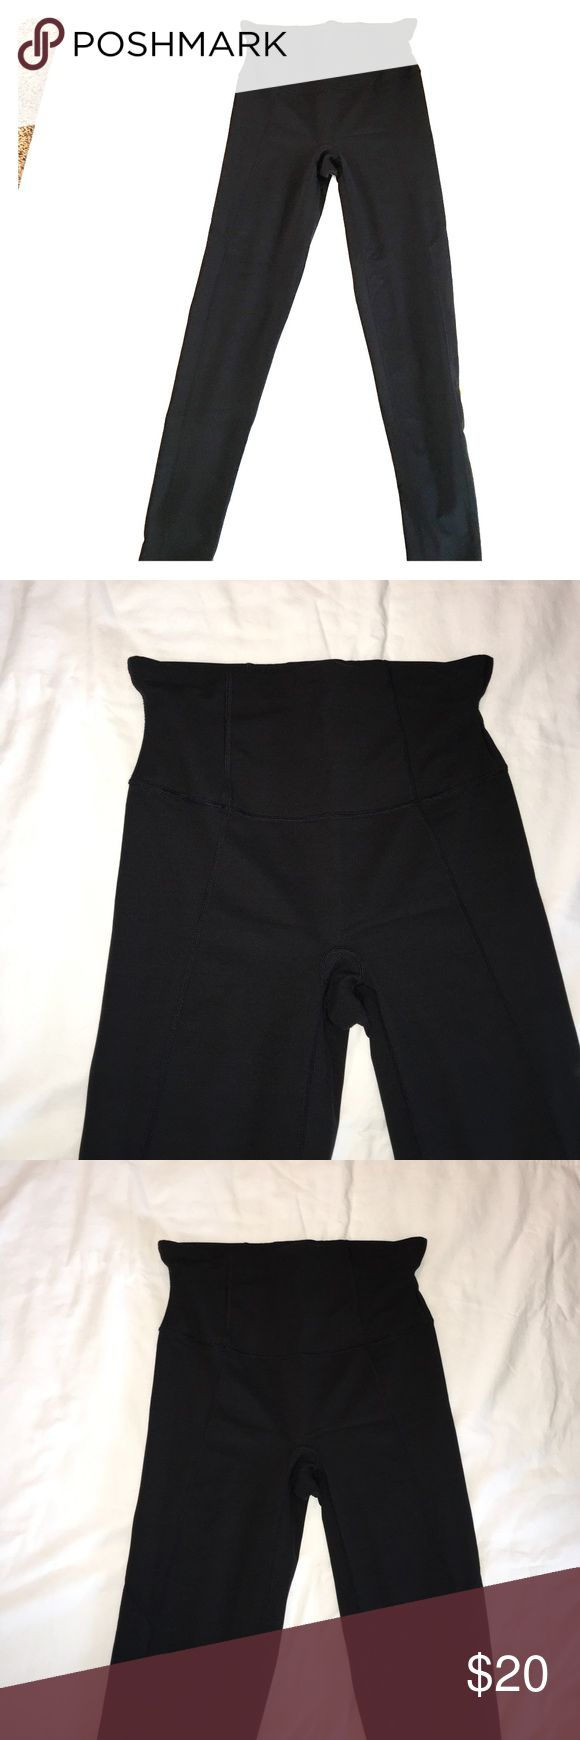 Spanx Black Leggings size XL In excellent condition, worn few times.  Black leggings from Spanx.  Size XL. SPANX Pants Leggings